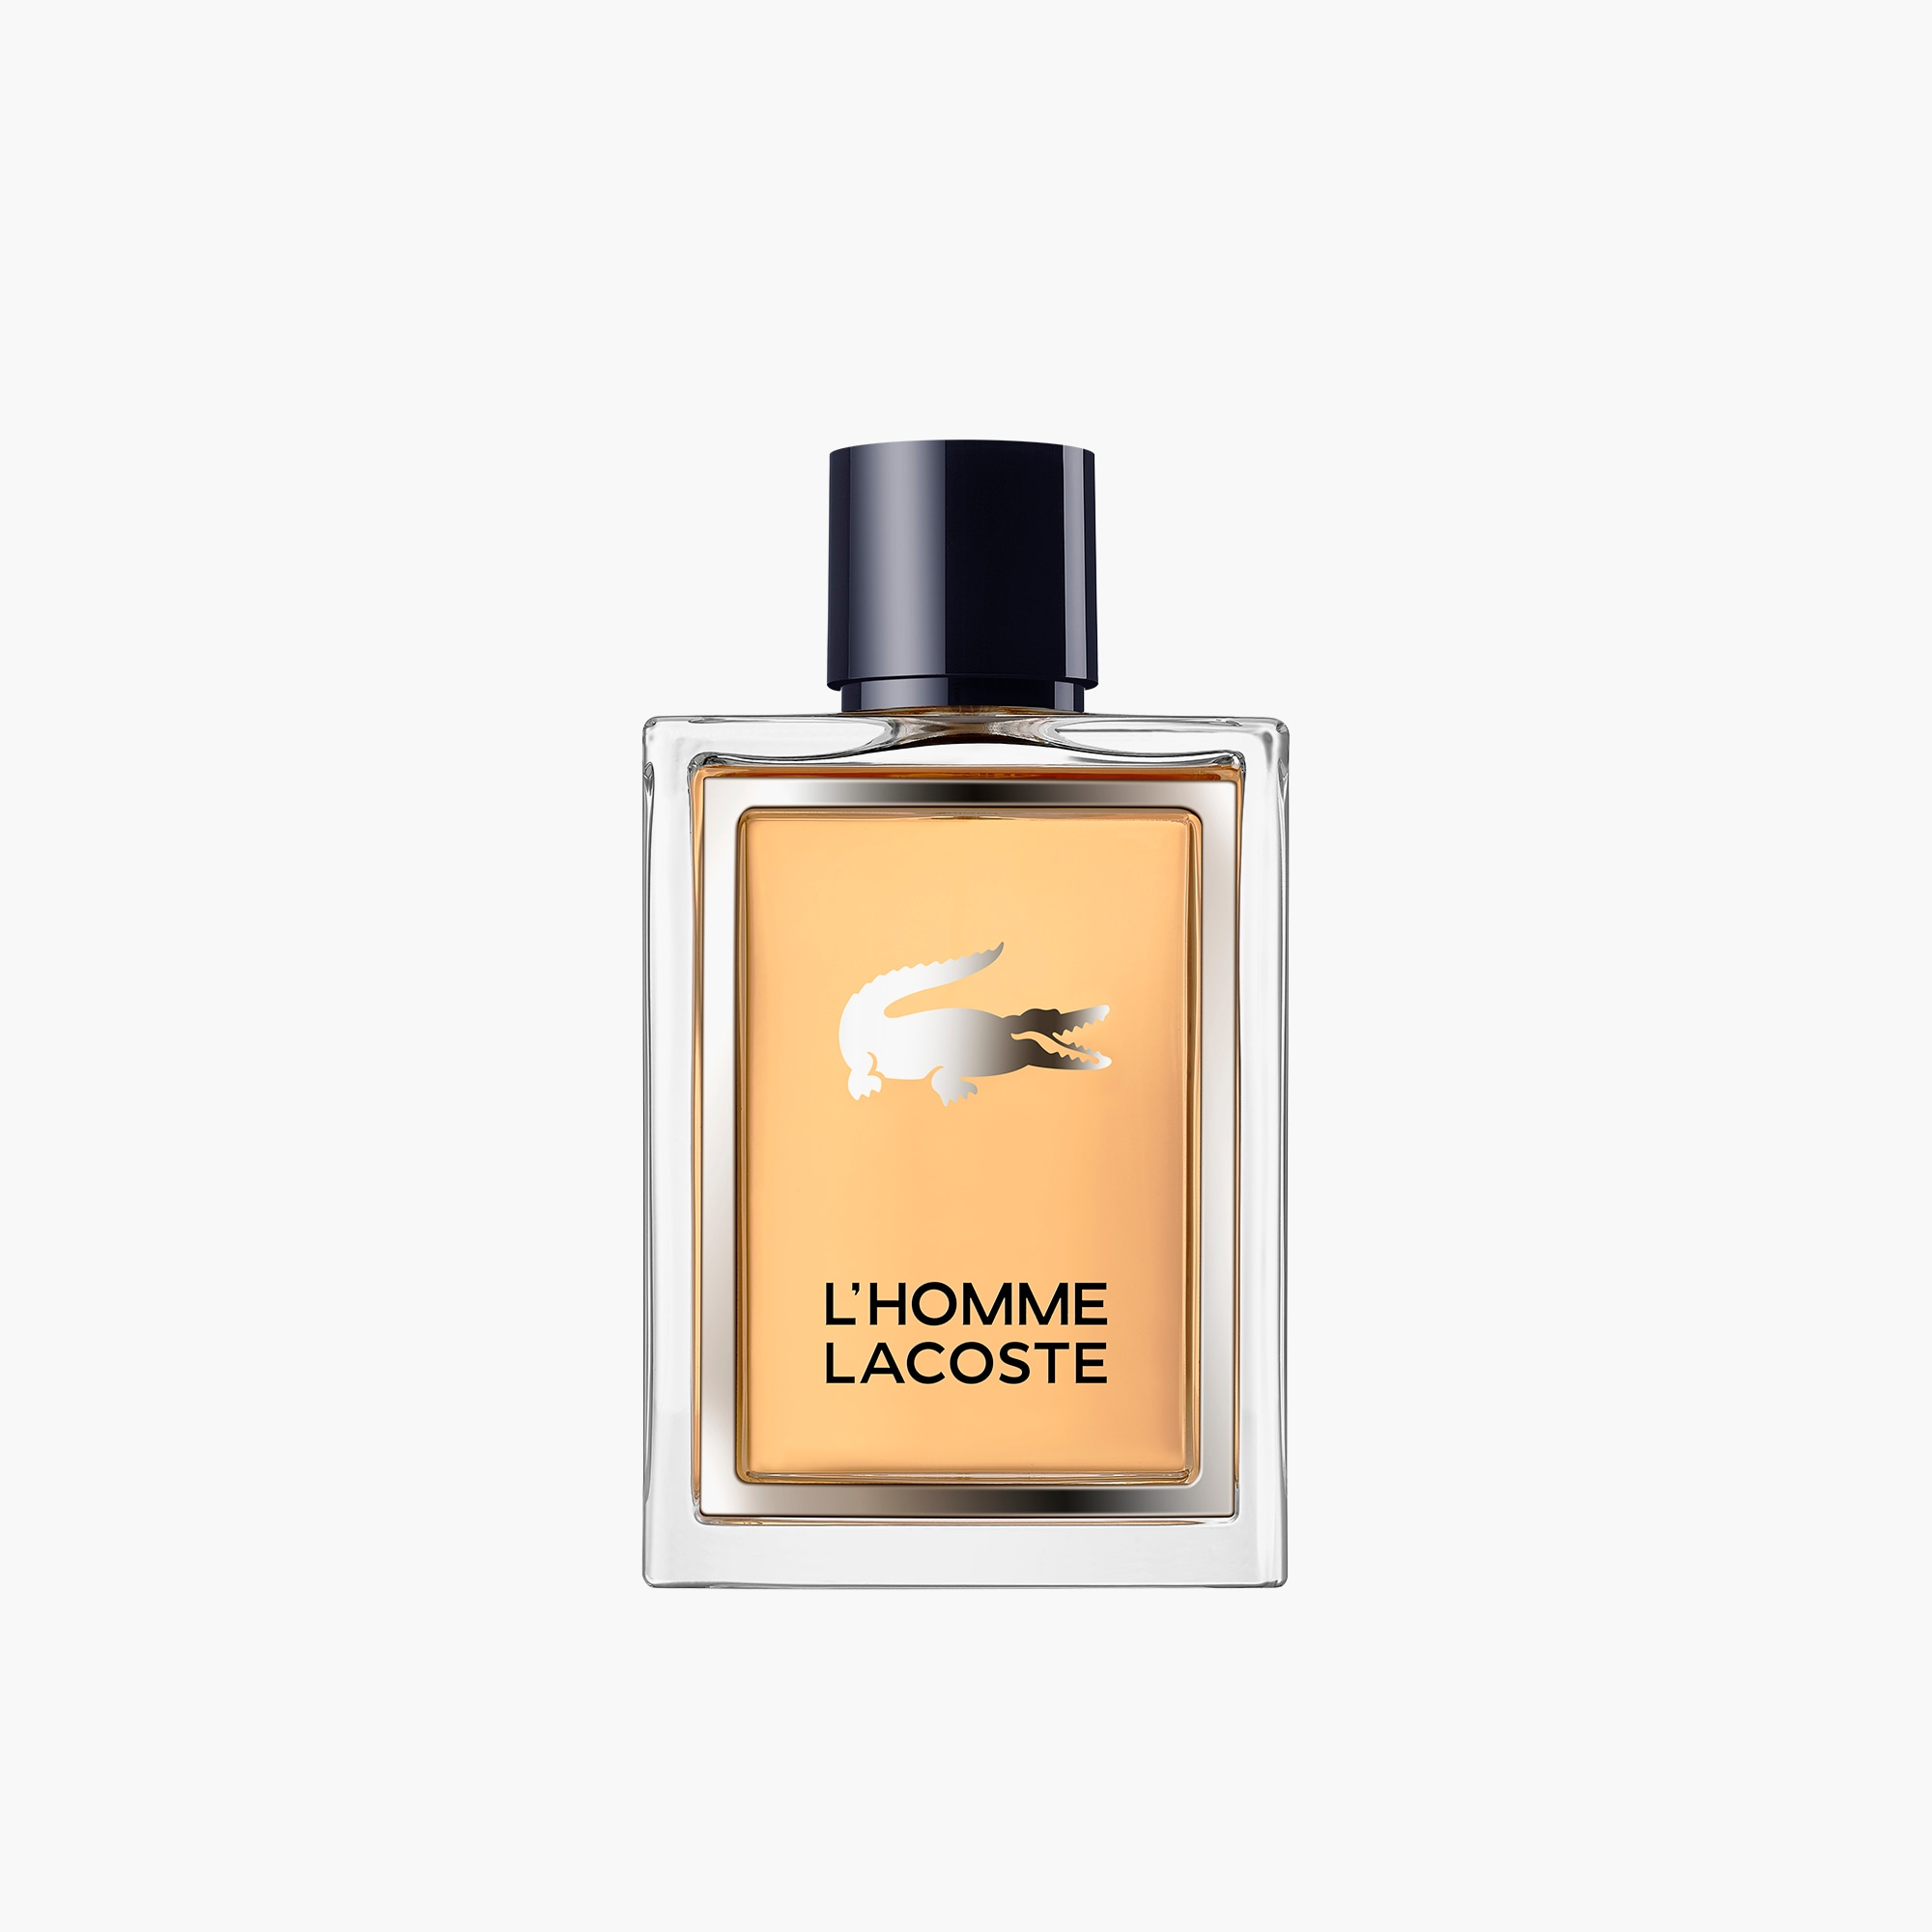 96fd51fbf Lacoste Perfumes and Colognes For Men | LACOSTE